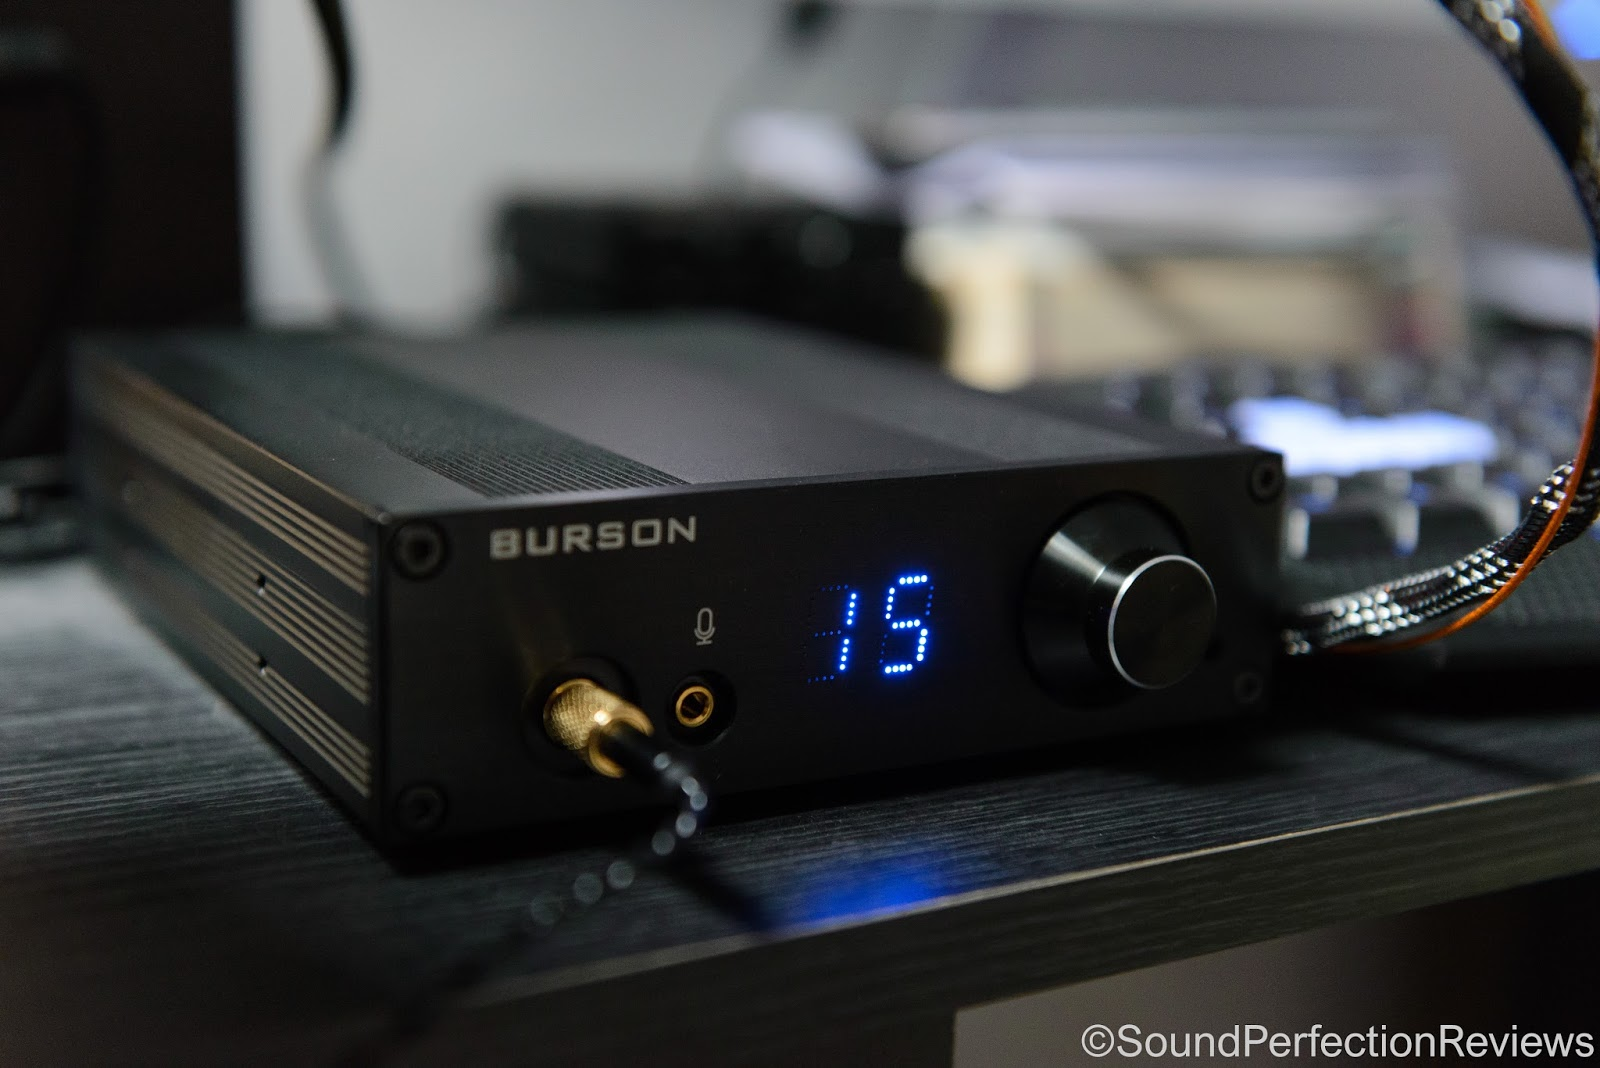 Review Burson Audio Play Class A Headphone Amp Dac Op Rollers Low Noise Microphone Pre With Dream